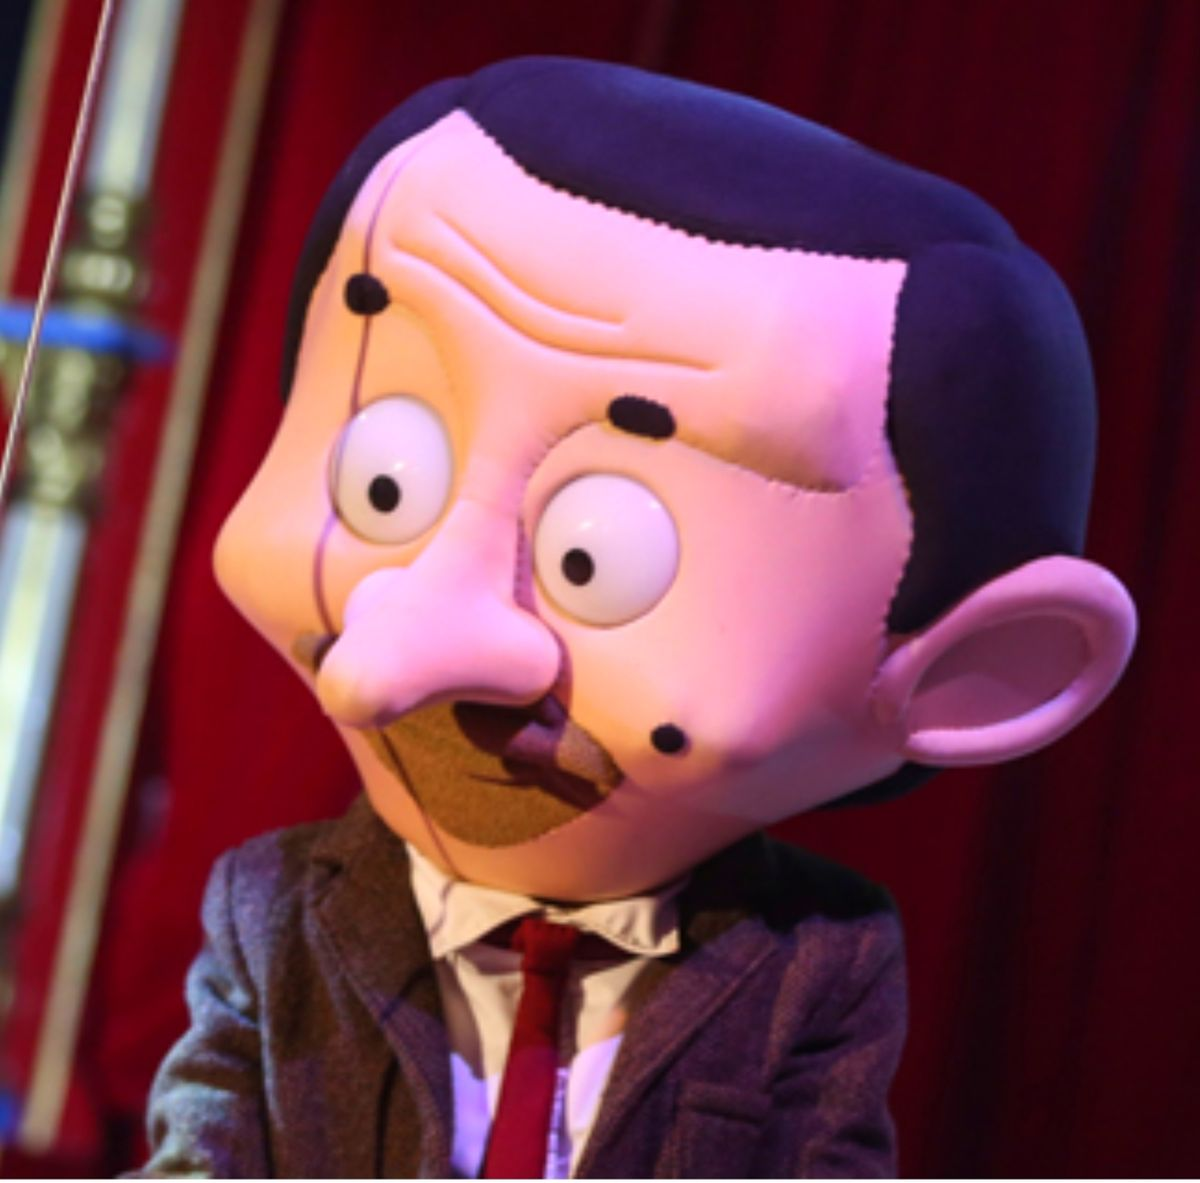 Kids Entertainment : Mr Bean Meet and Greet boeken / inhuren